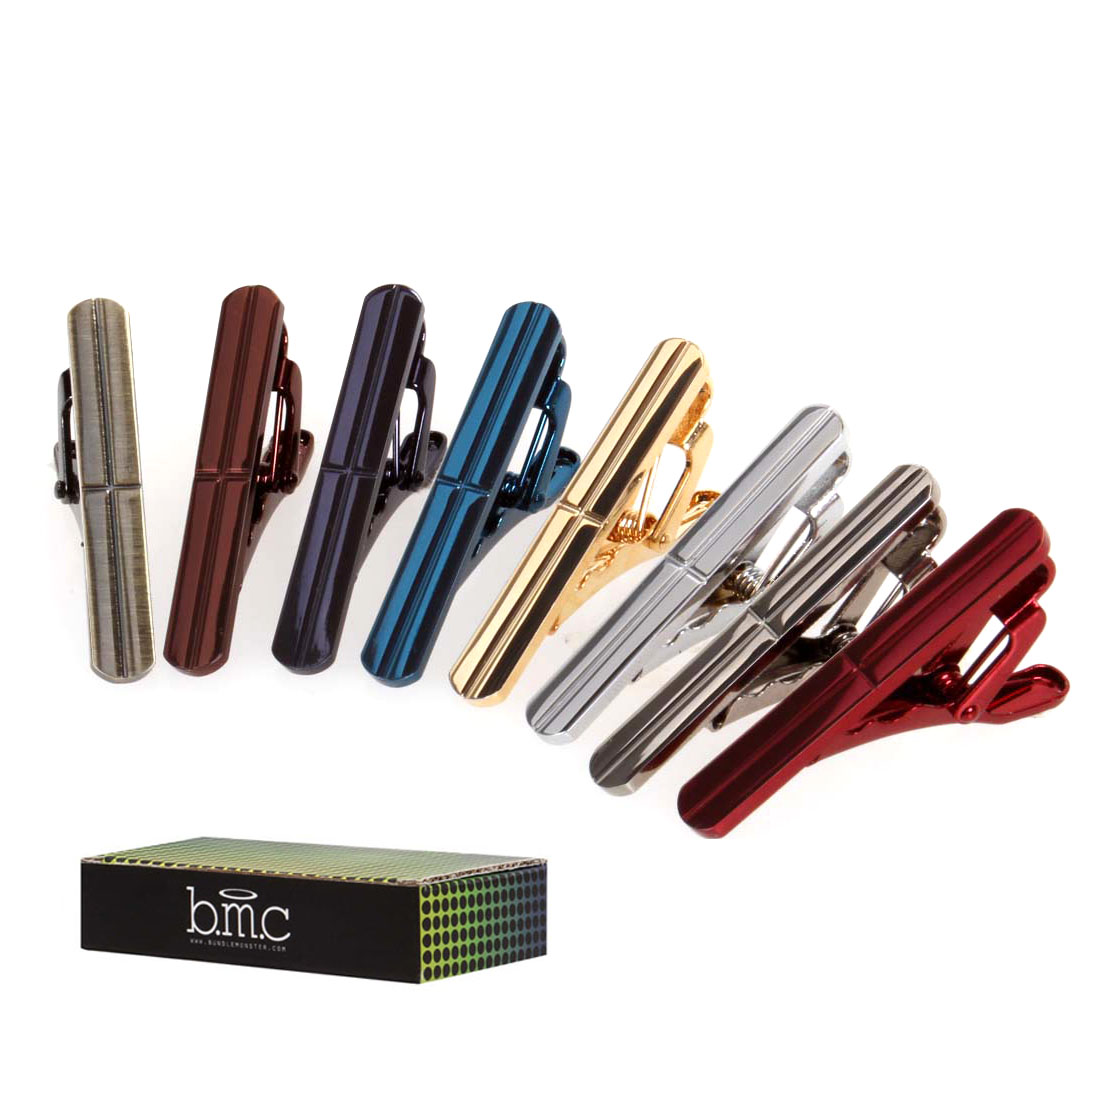 BMC 8pc Mens Fashion Alloy Metal 1.5 in. Metallic Colored Skinny Tie Bar Clips